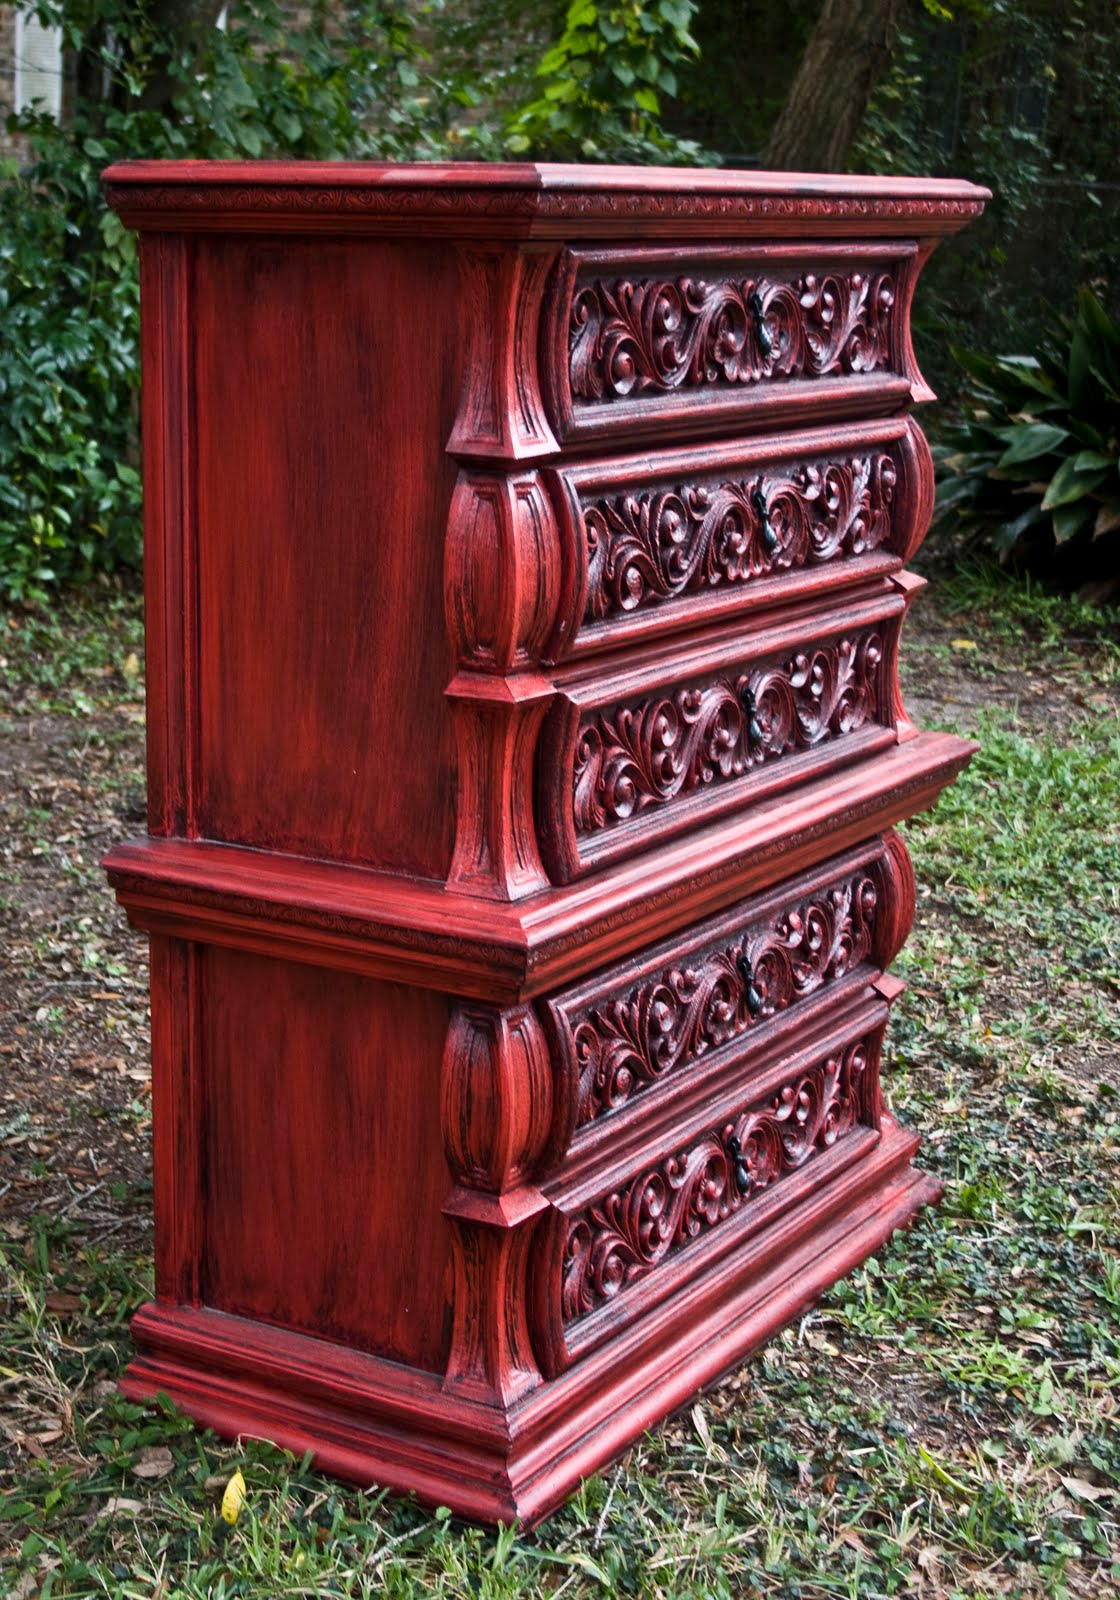 Modernly Shabby Chic Furniture: Ornate Red and Black Dresser